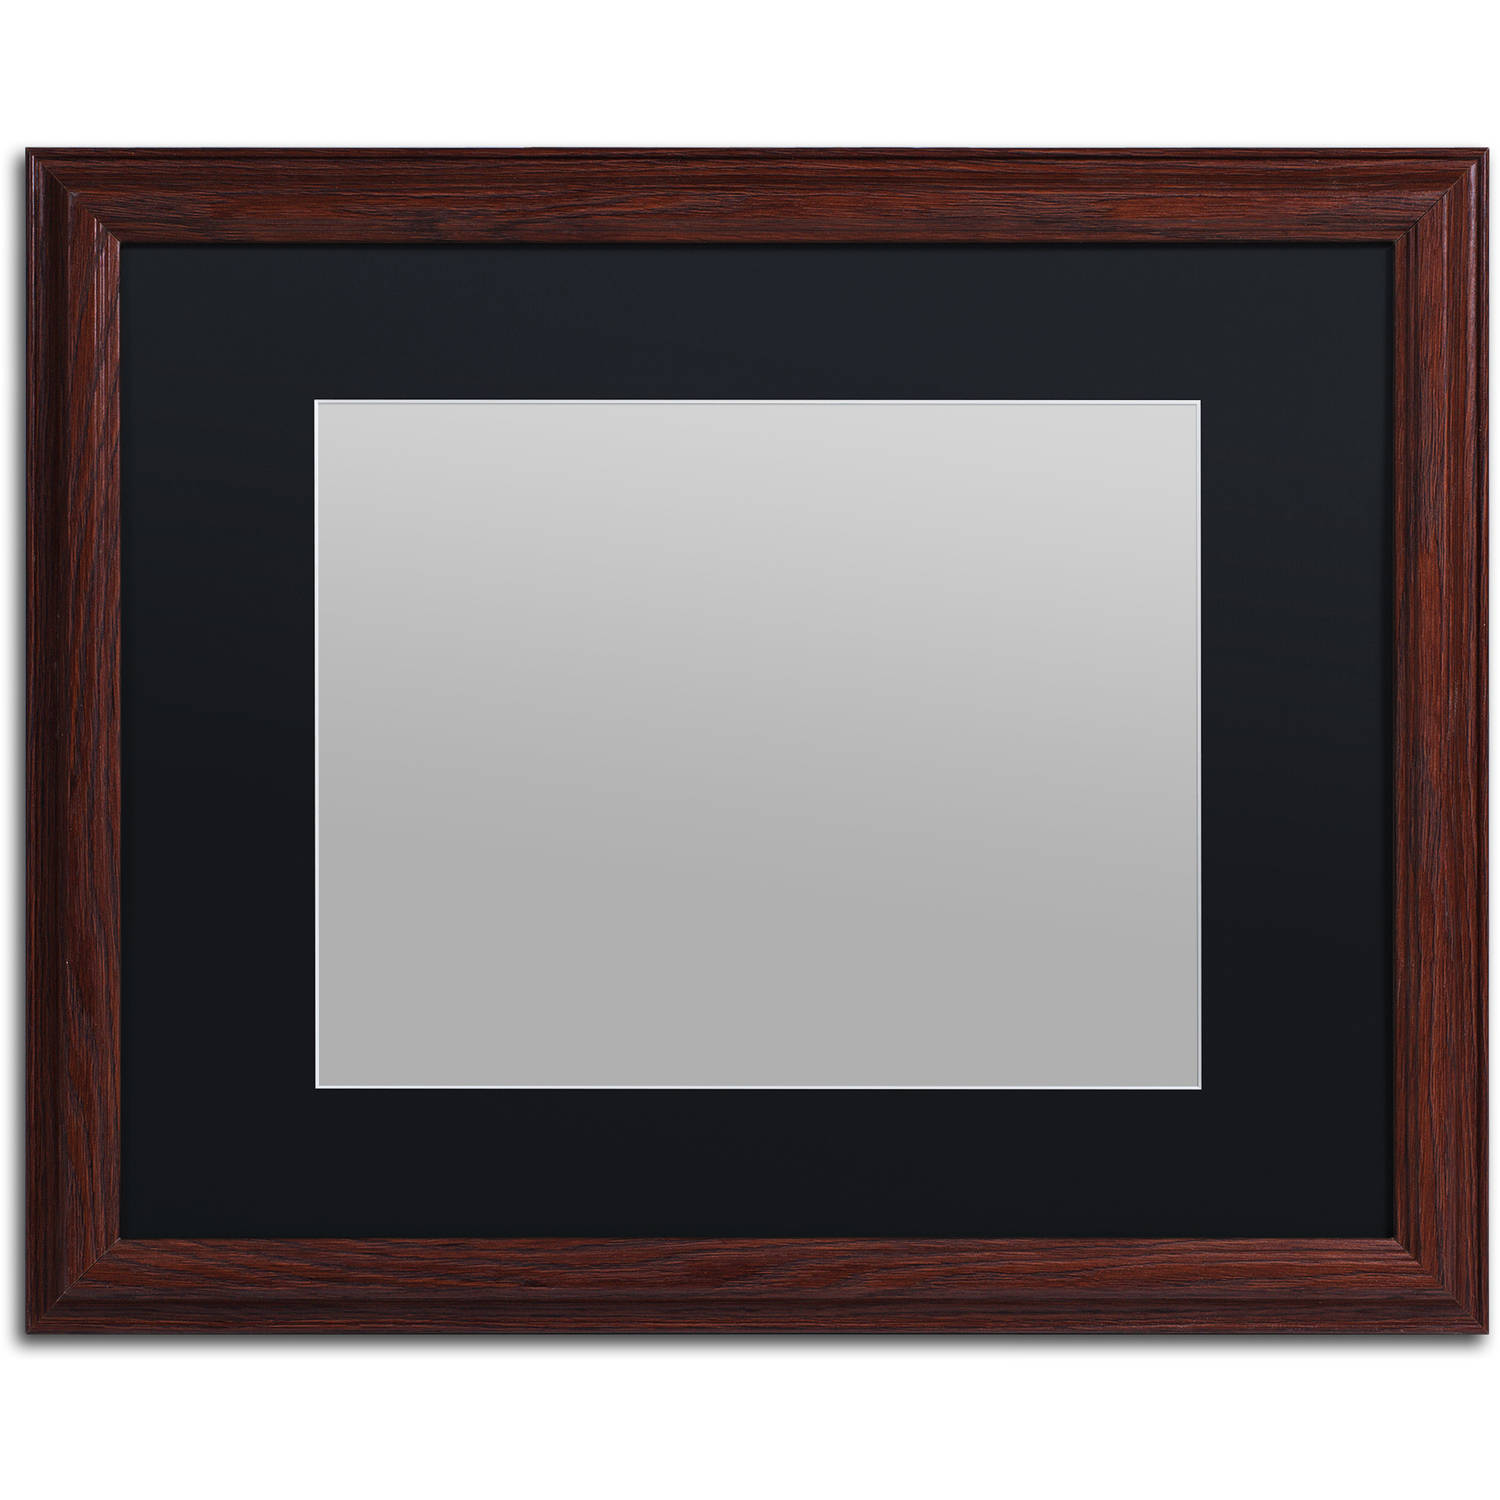 Trademark Fine Art Heavy Duty 16x20 Wood Picture Frame With 11x14